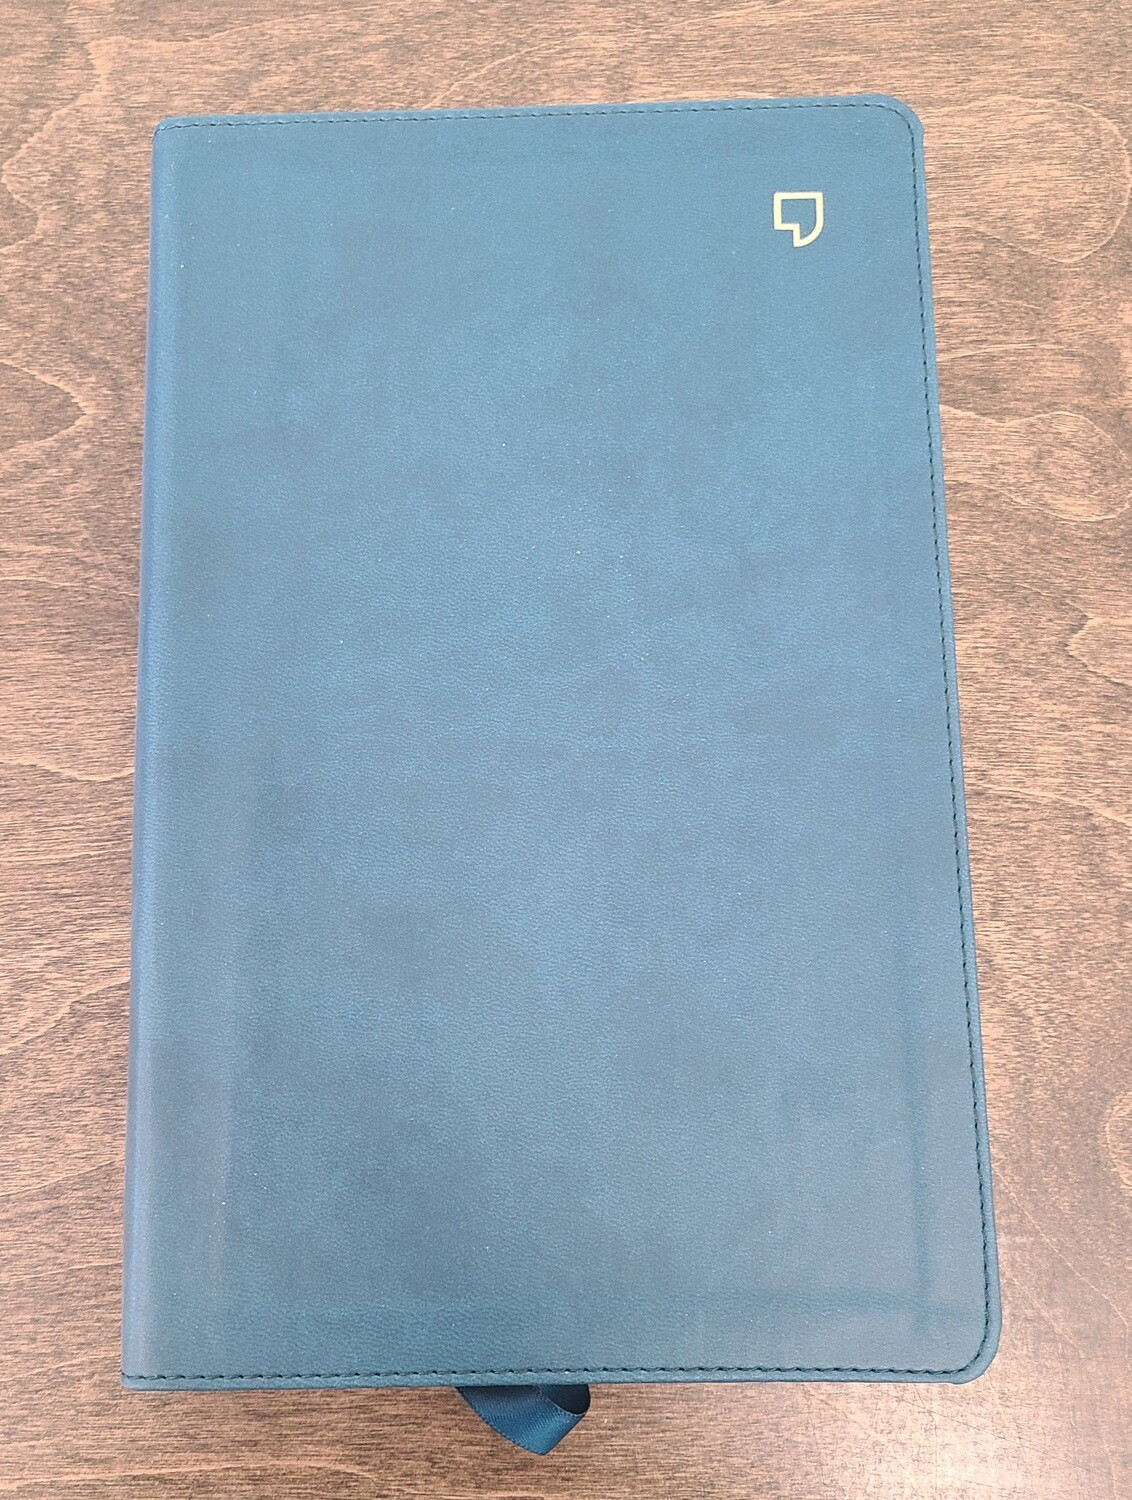 NET Thinline Thumb-Index Bible - Teal Leathersoft